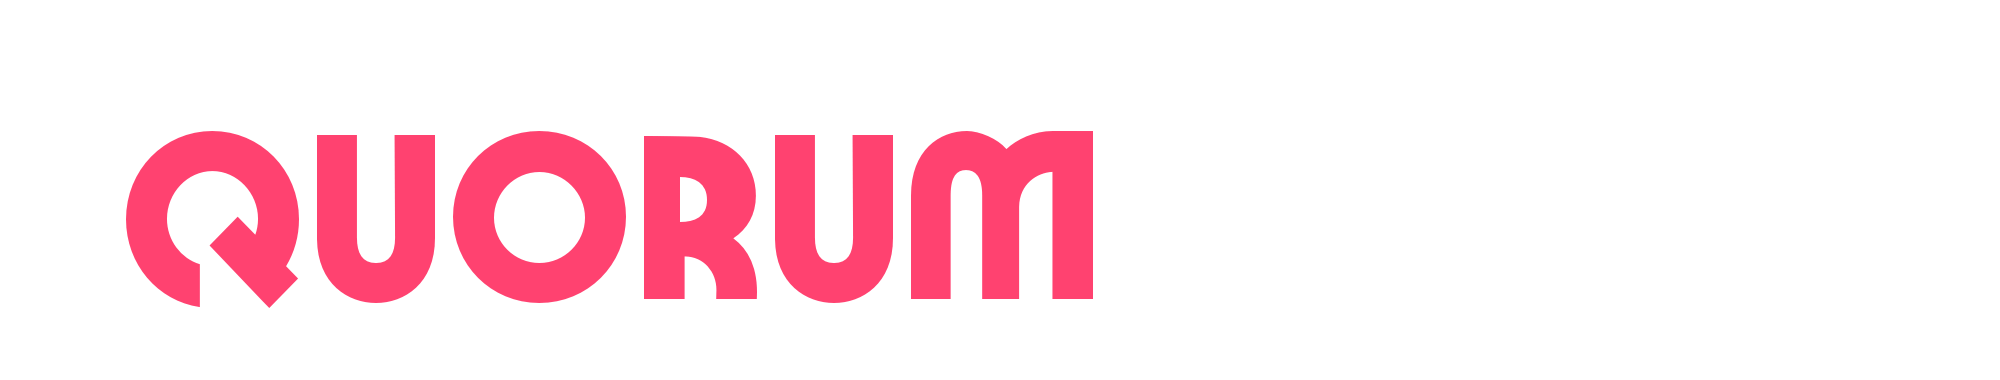 quorum-branding-ux-ui-desktop-app-mobile-illustration-logo-01-1